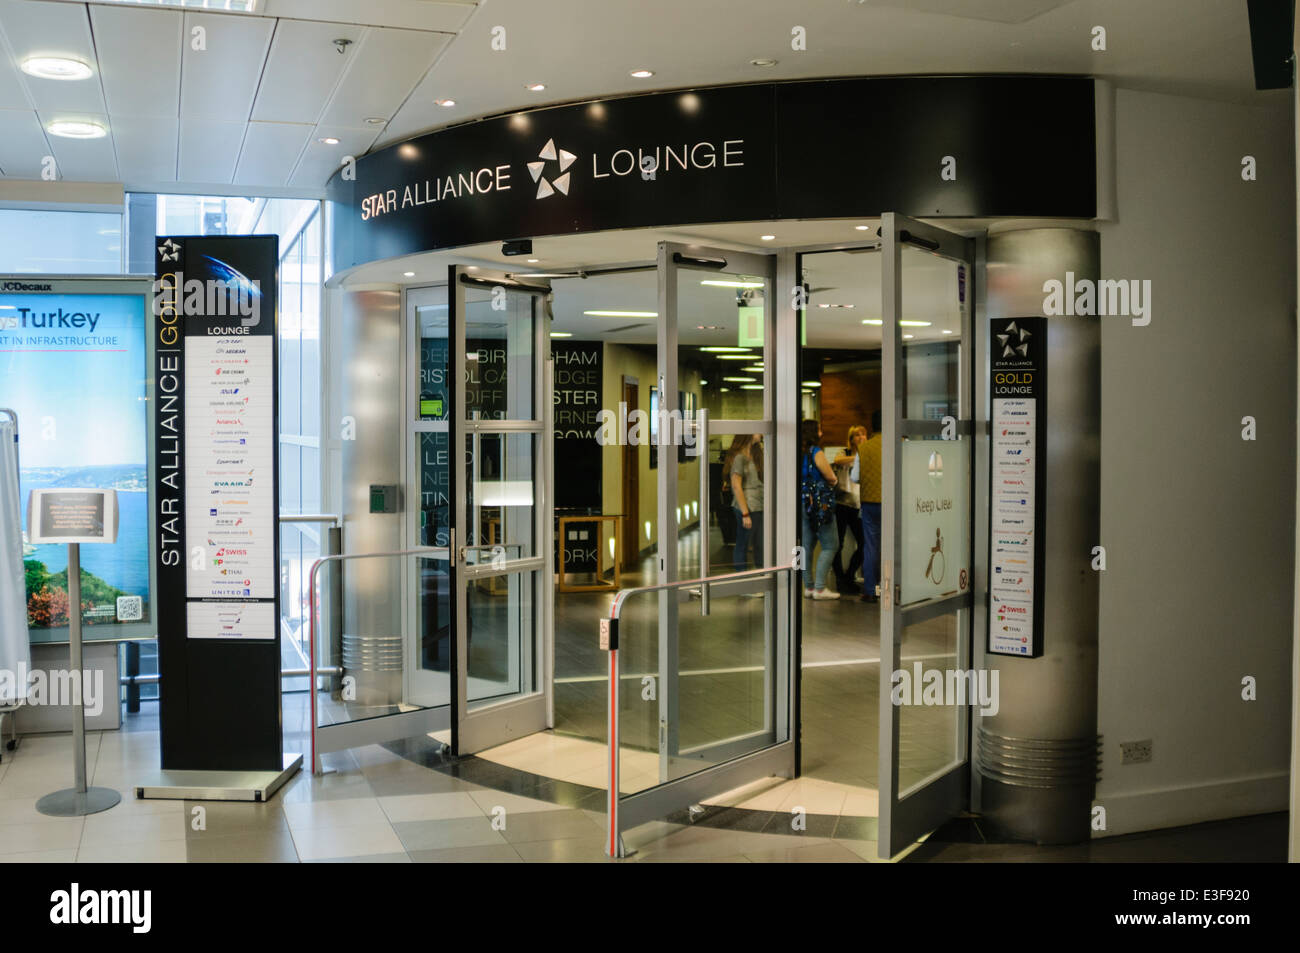 Star Alliance Gold Lounge at Heathrow Terminal 1 - Stock Image